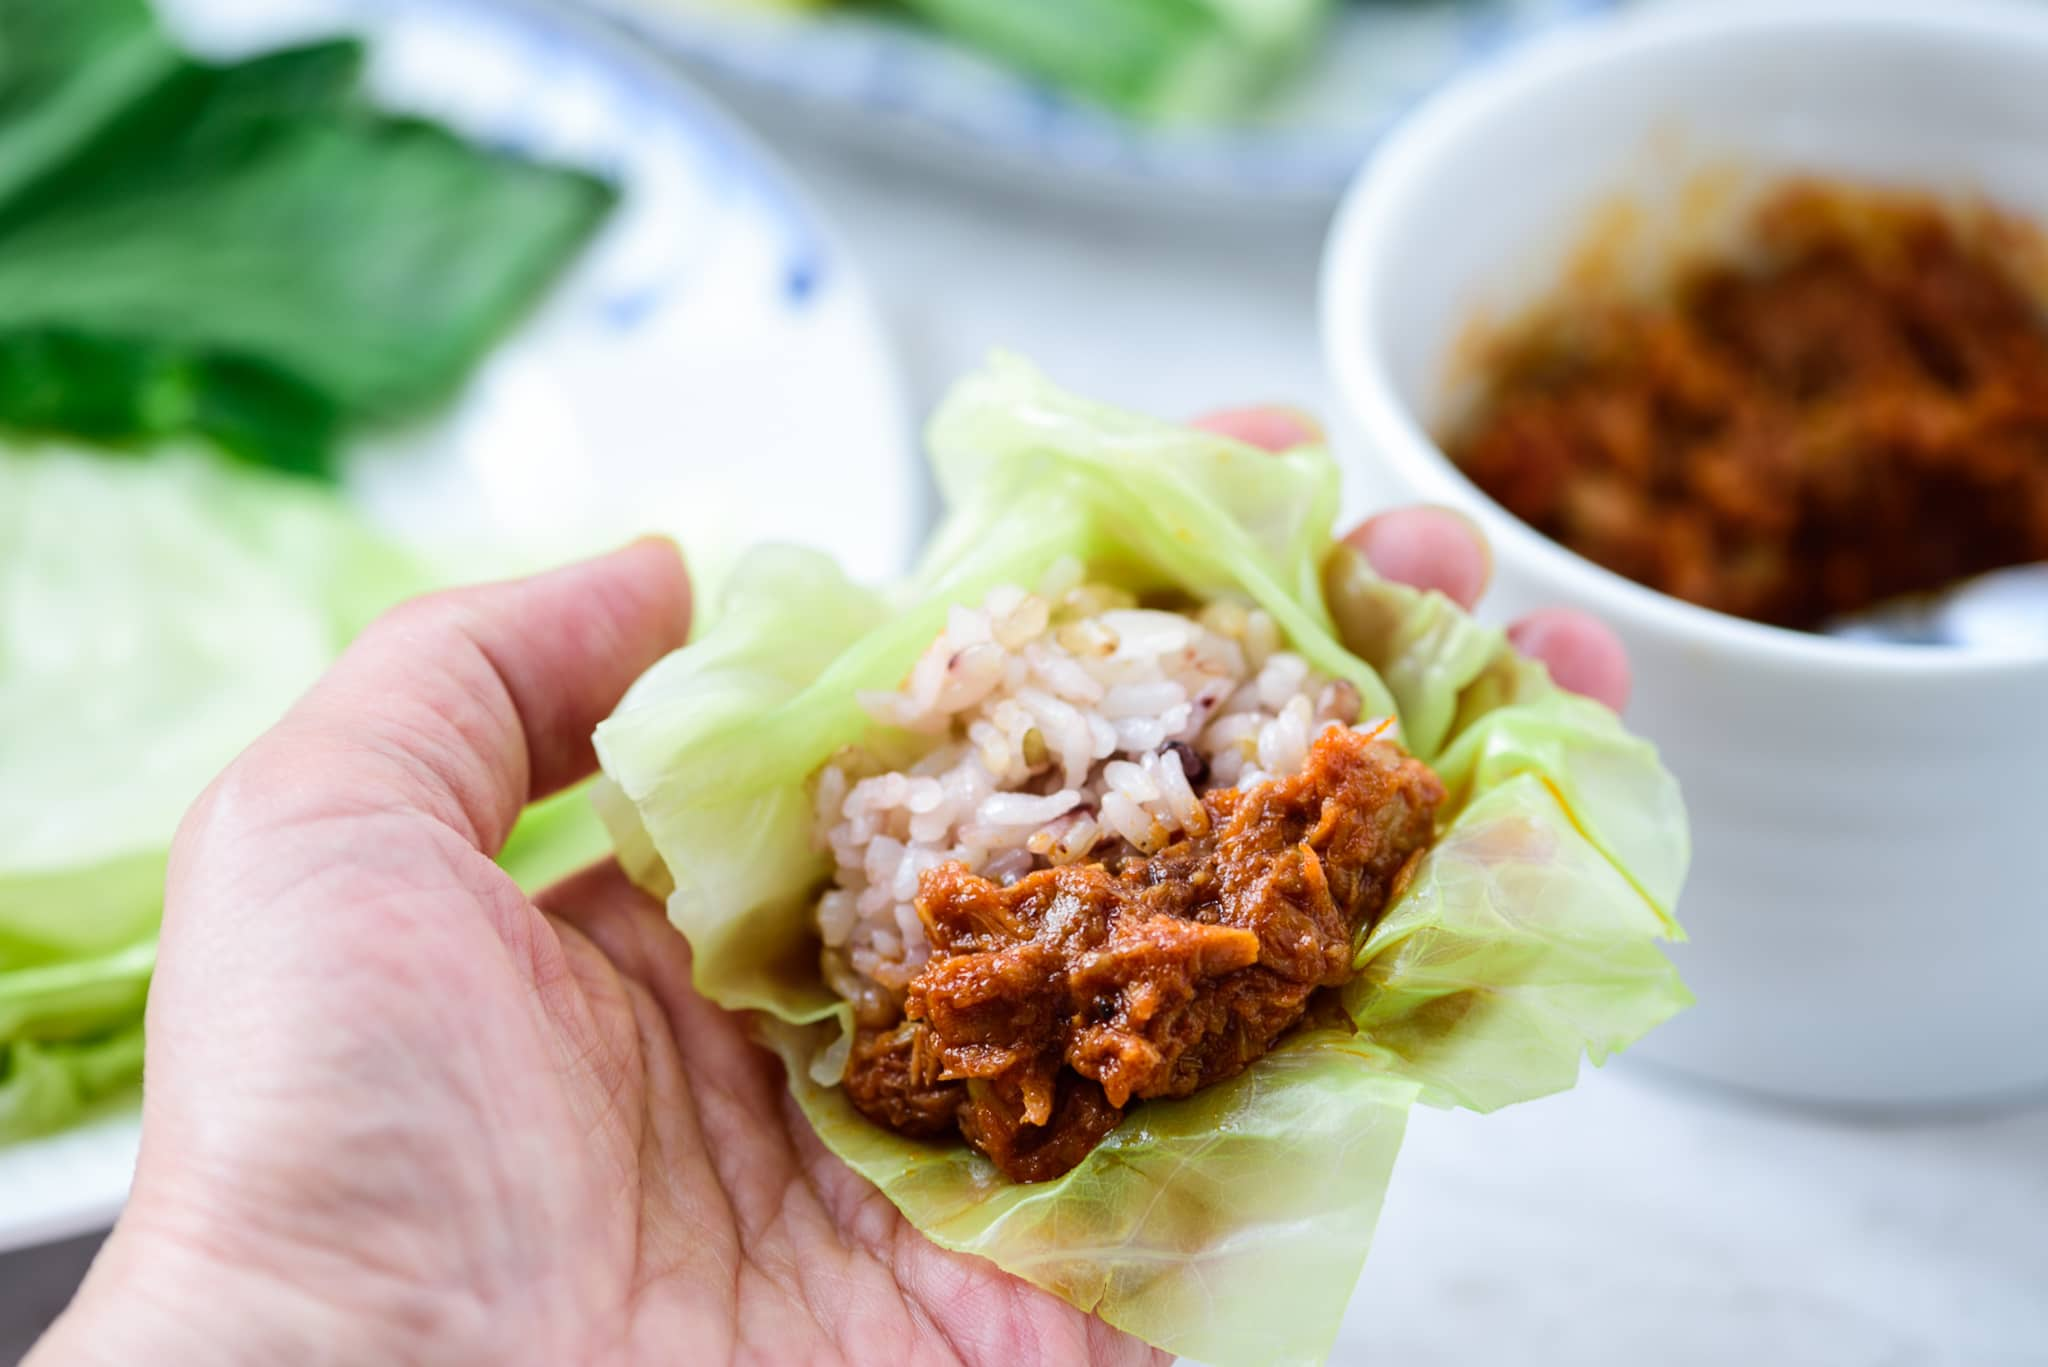 DSC1942 - Ssamjang (Sauce for Korean Lettuce Wraps)